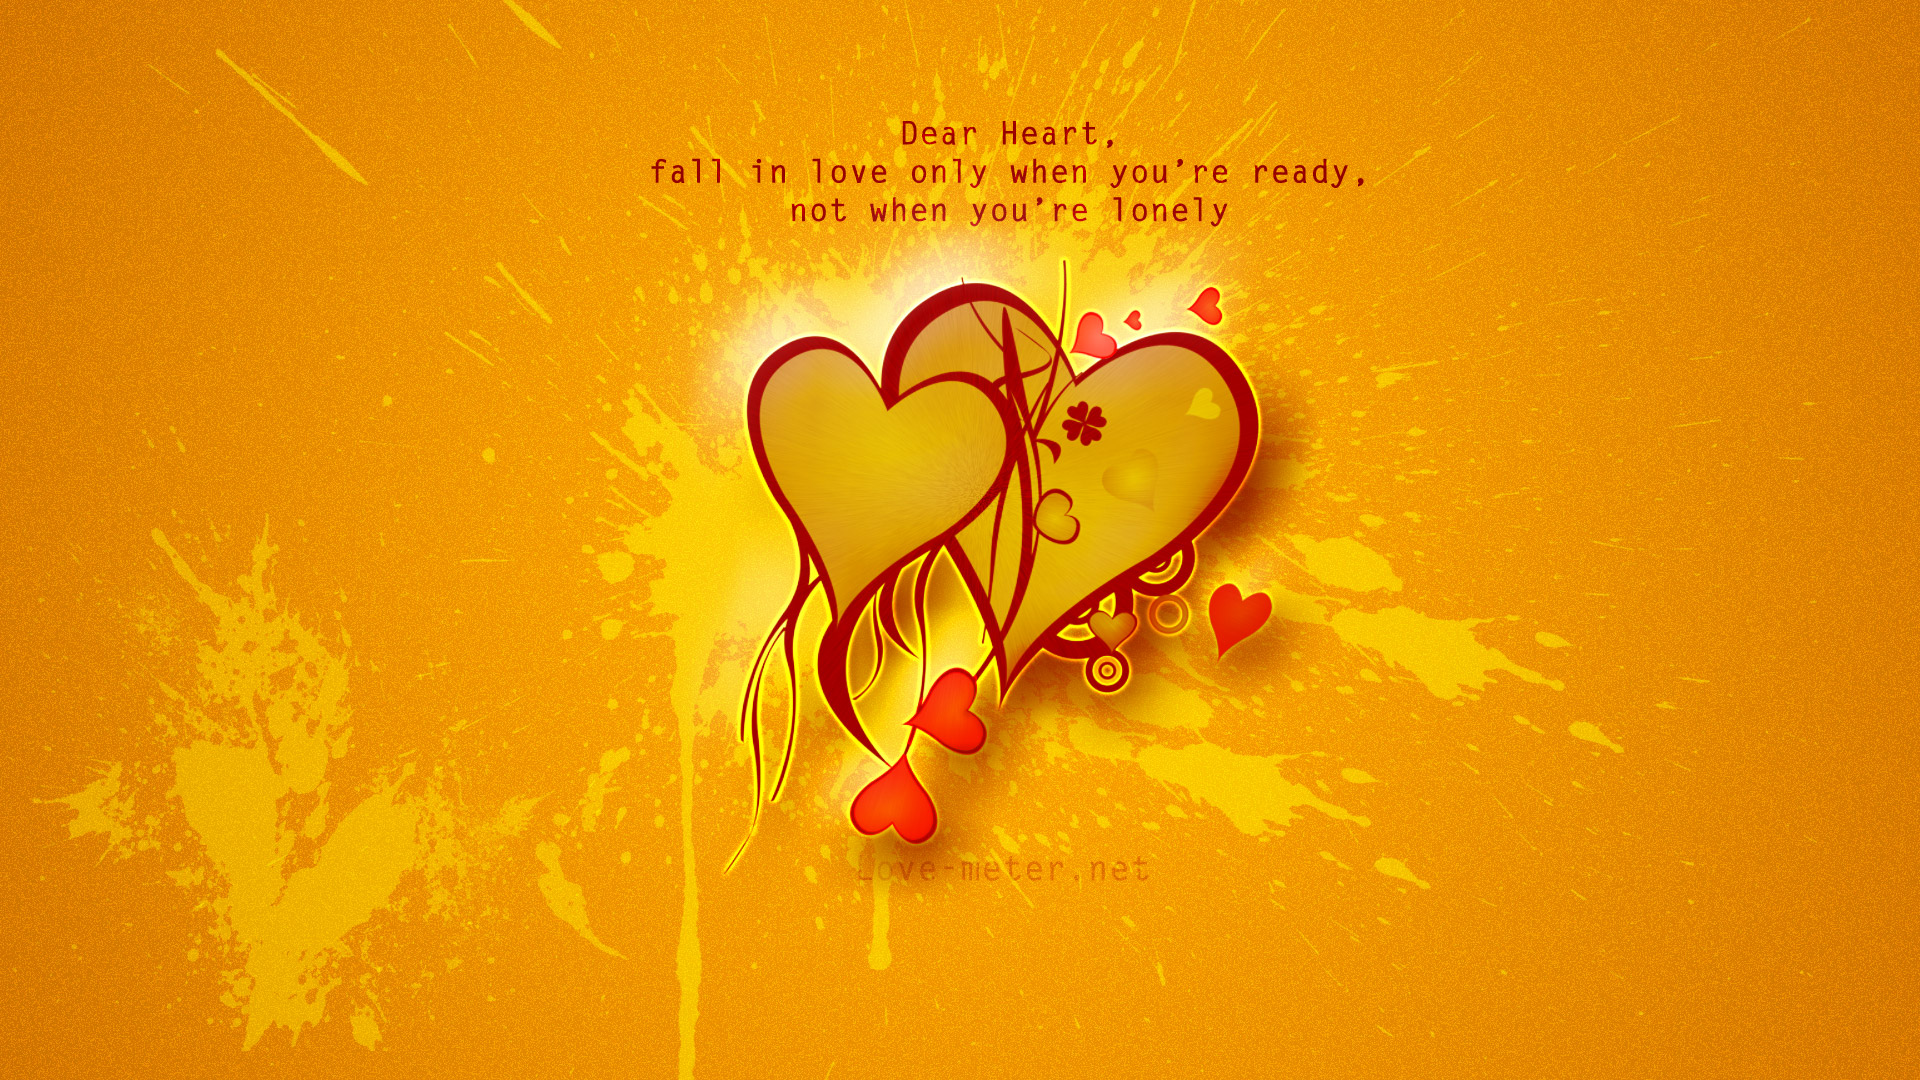 Good Wallpaper High Quality Love - Fall-In-Love-Wallpaper-Quotes  Perfect Image Reference_711320.jpg